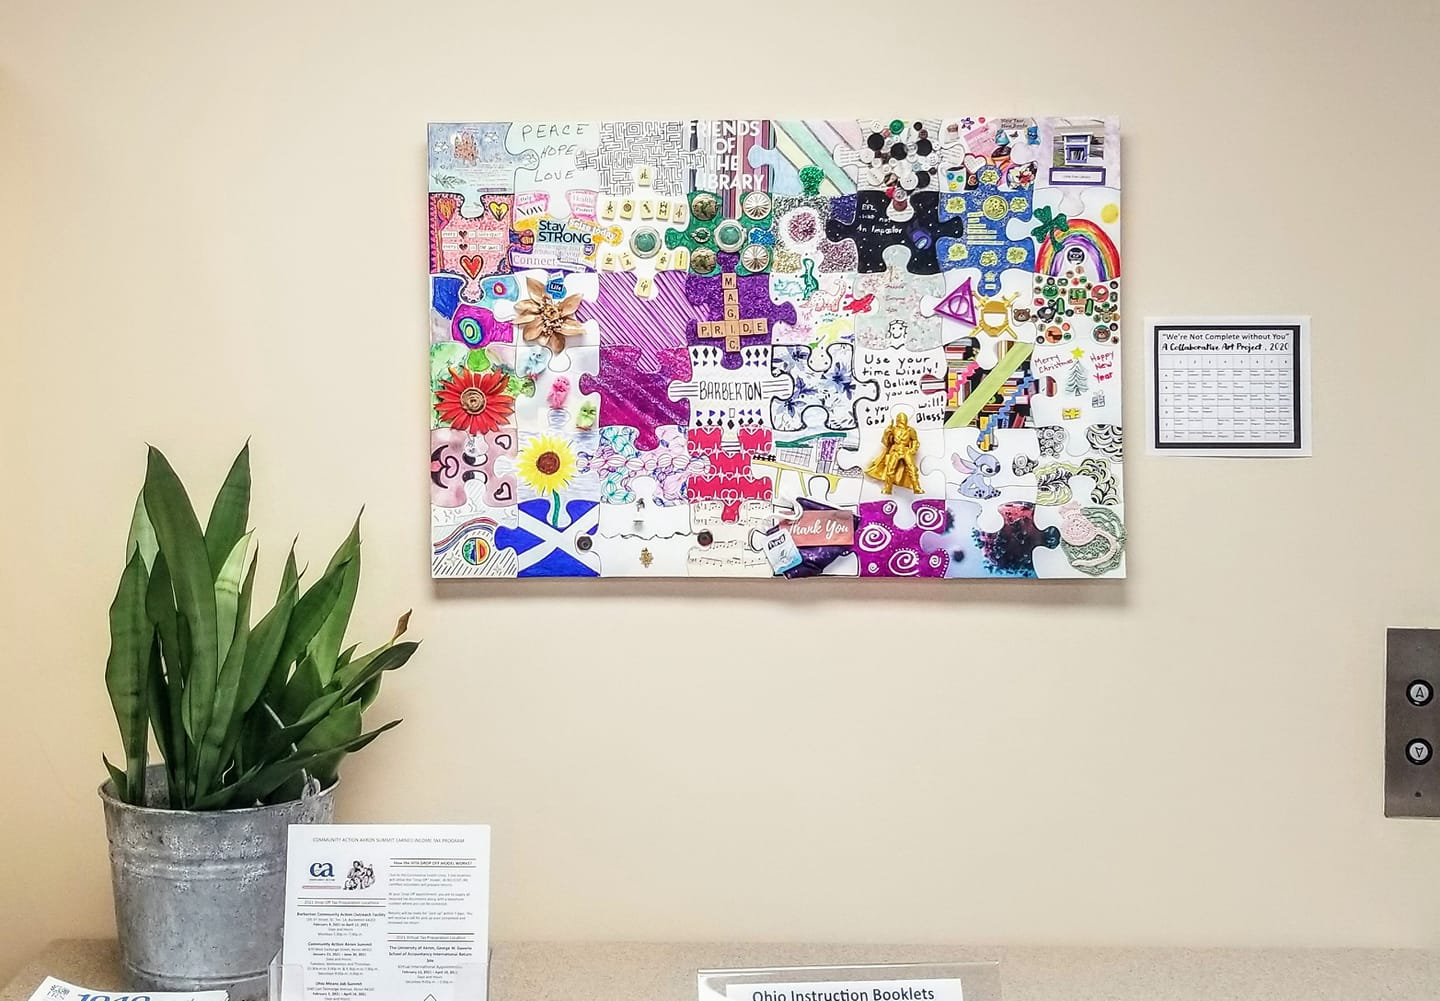 We're Not Complete Without You: A Collaborative Puzzle Art Project